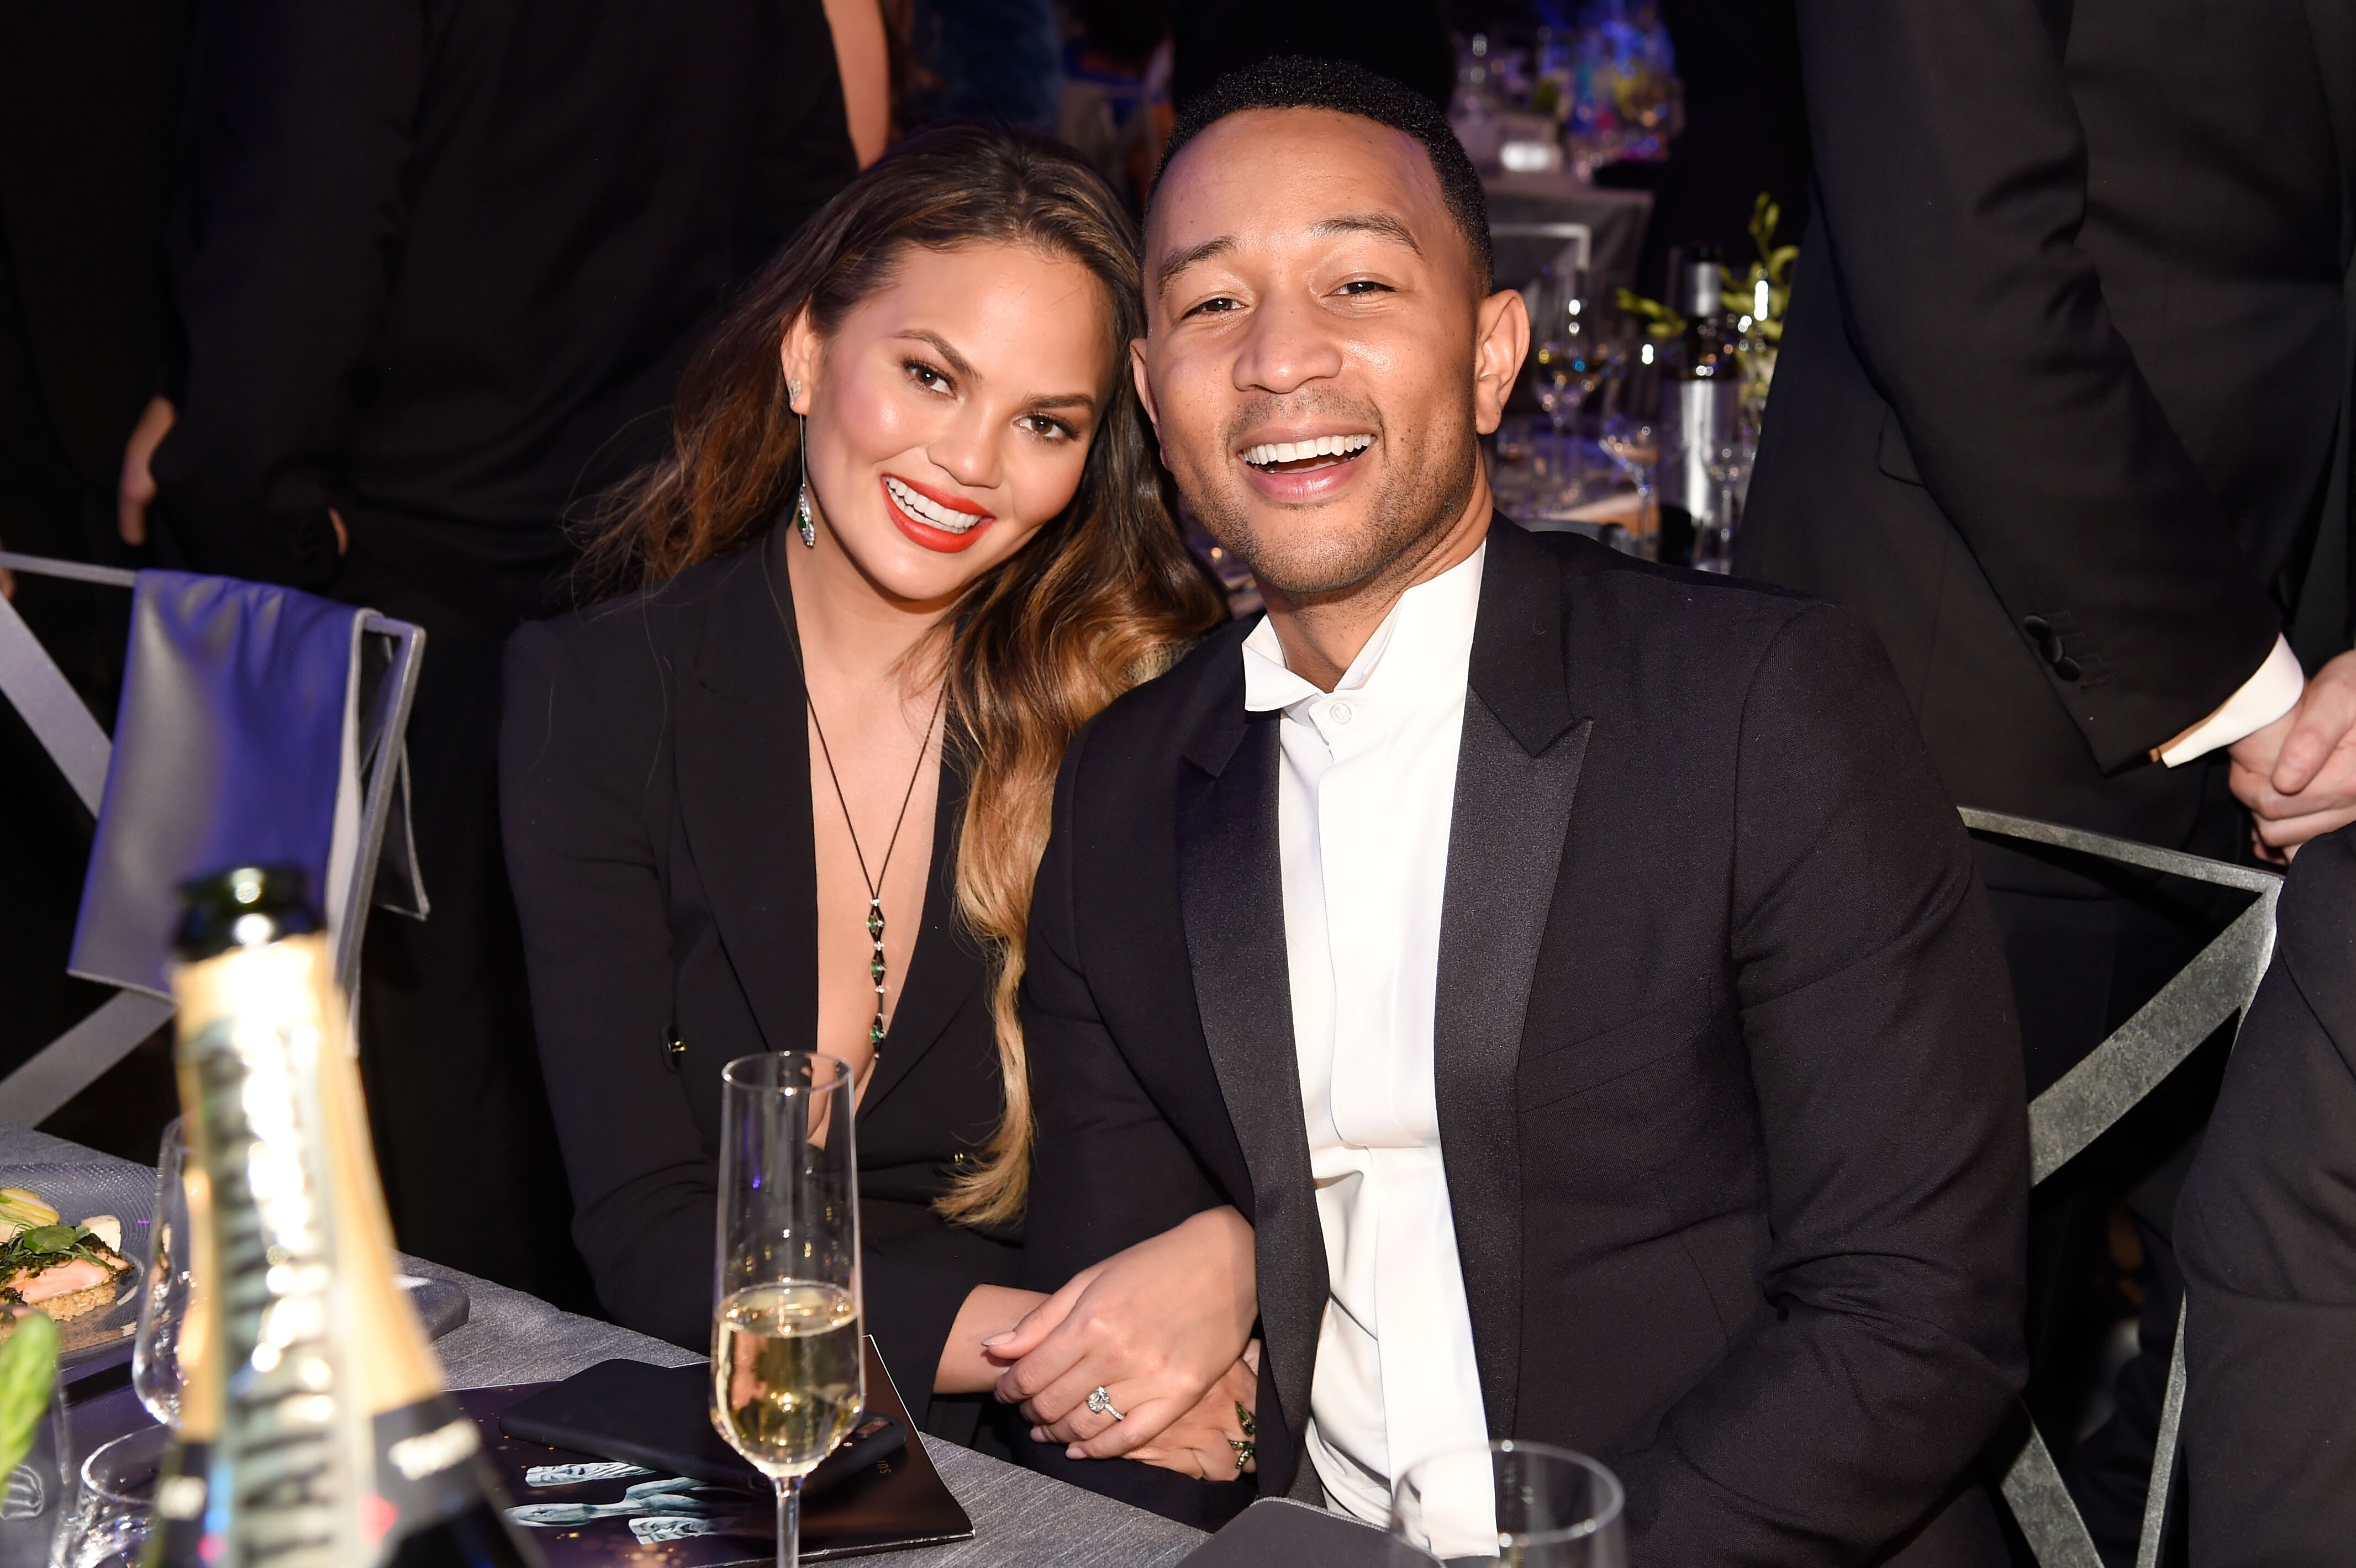 Chrissy Teigen and John Legend during the 23rd Annual Screen Actors Guild Awards at The Shrine Auditorium on January 29, 2017 | Photo: Getty Images